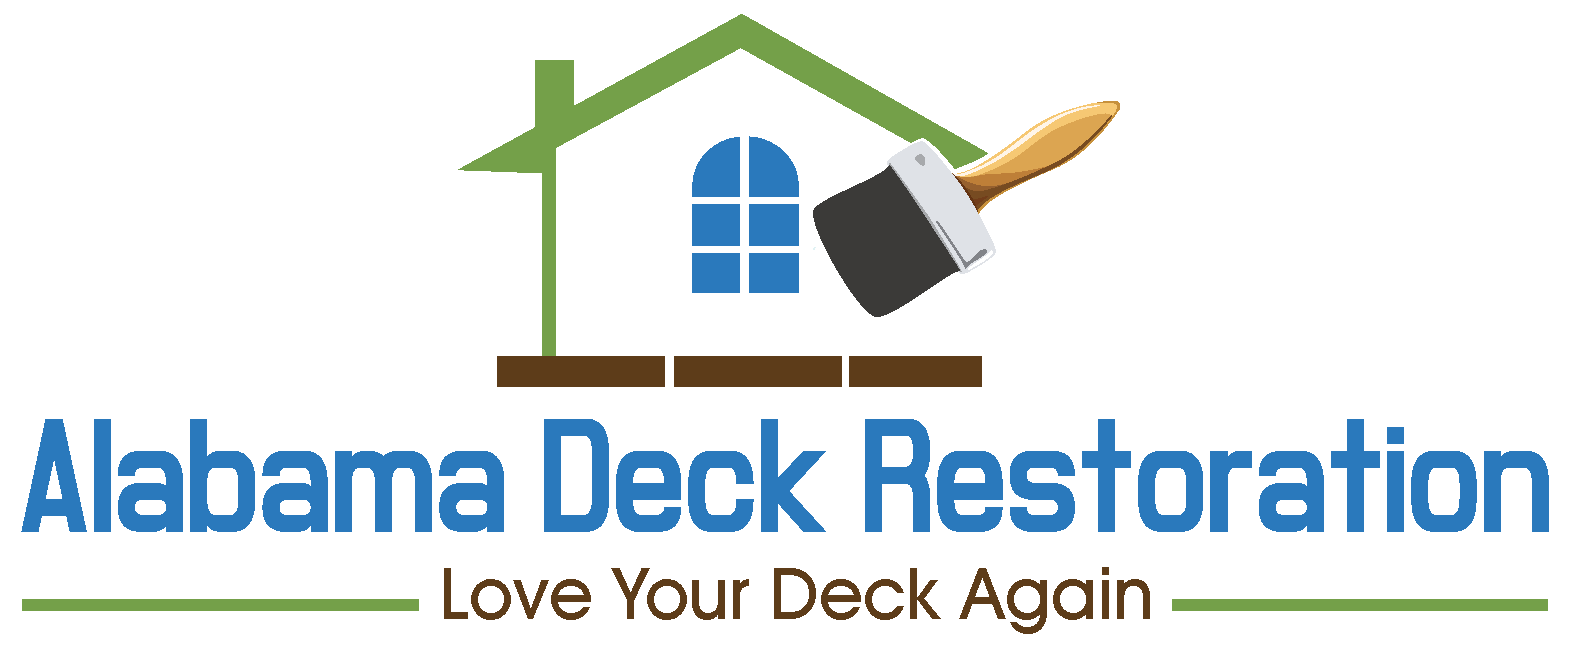 Alabama Deck Restoration